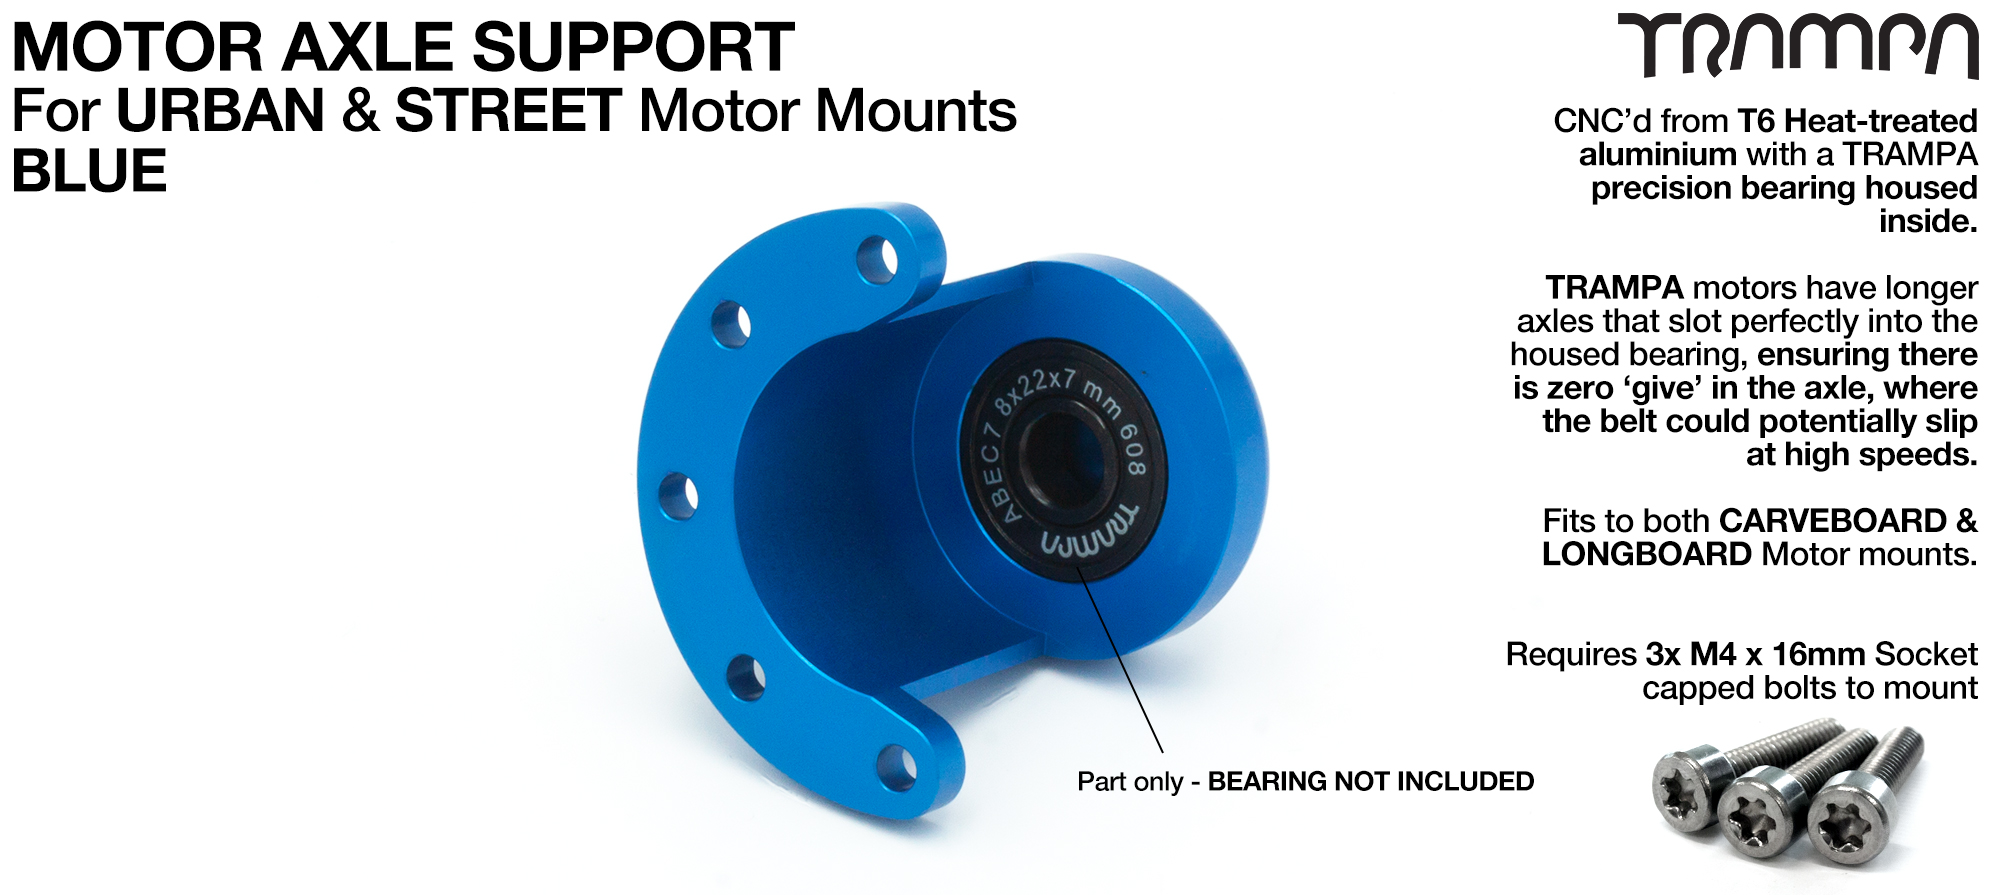 Motor Axle Support for Spring Truck Motor Mounts UNIVERSAL - BLUE